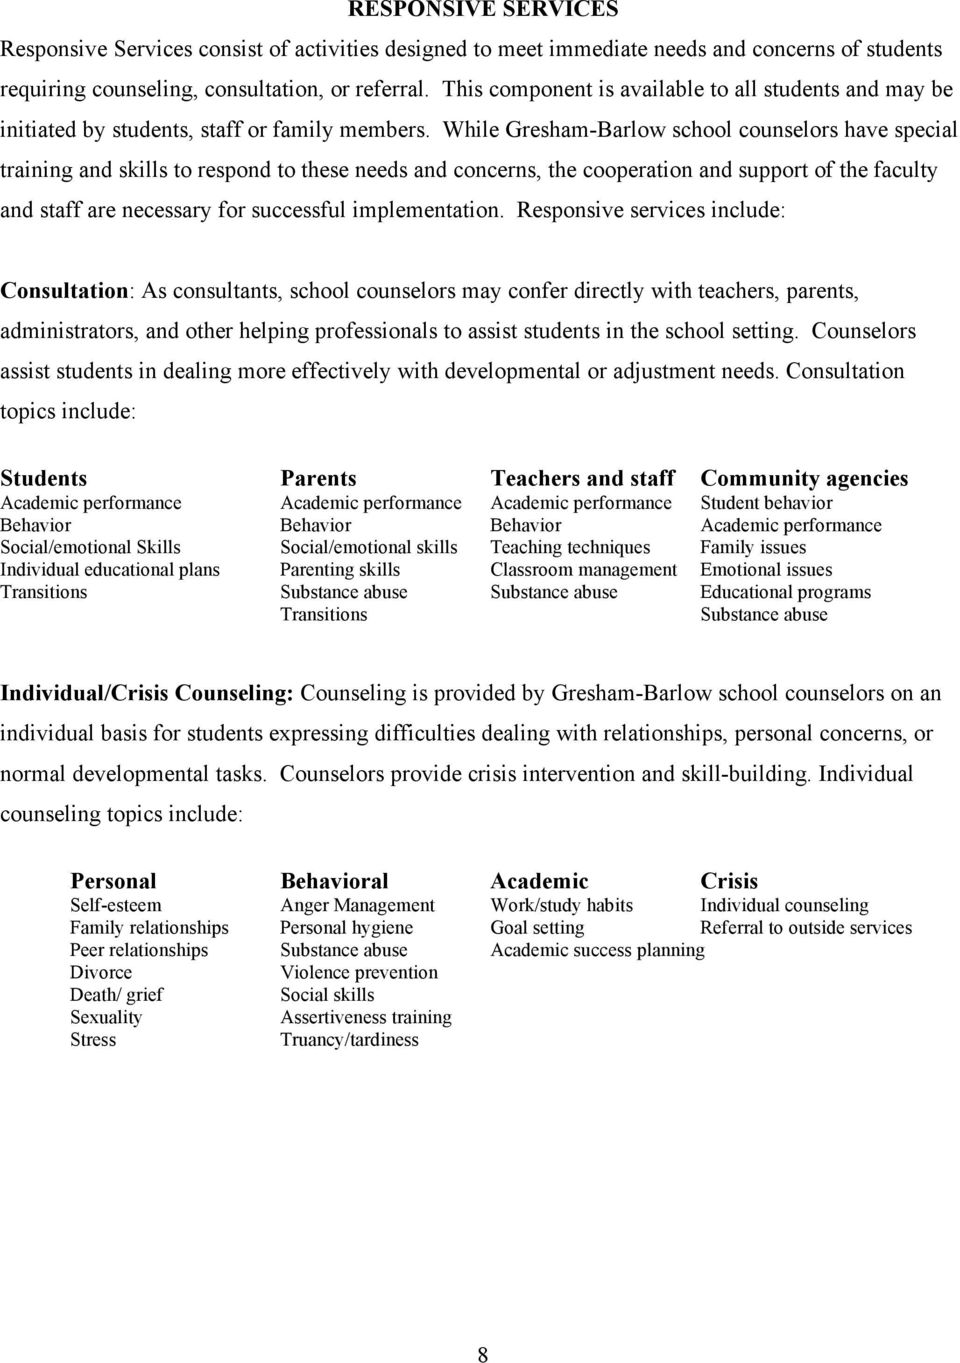 While Gresham-Barlow school counselors have special training and skills to respond to these needs and concerns, the cooperation and support of the faculty and staff are necessary for successful